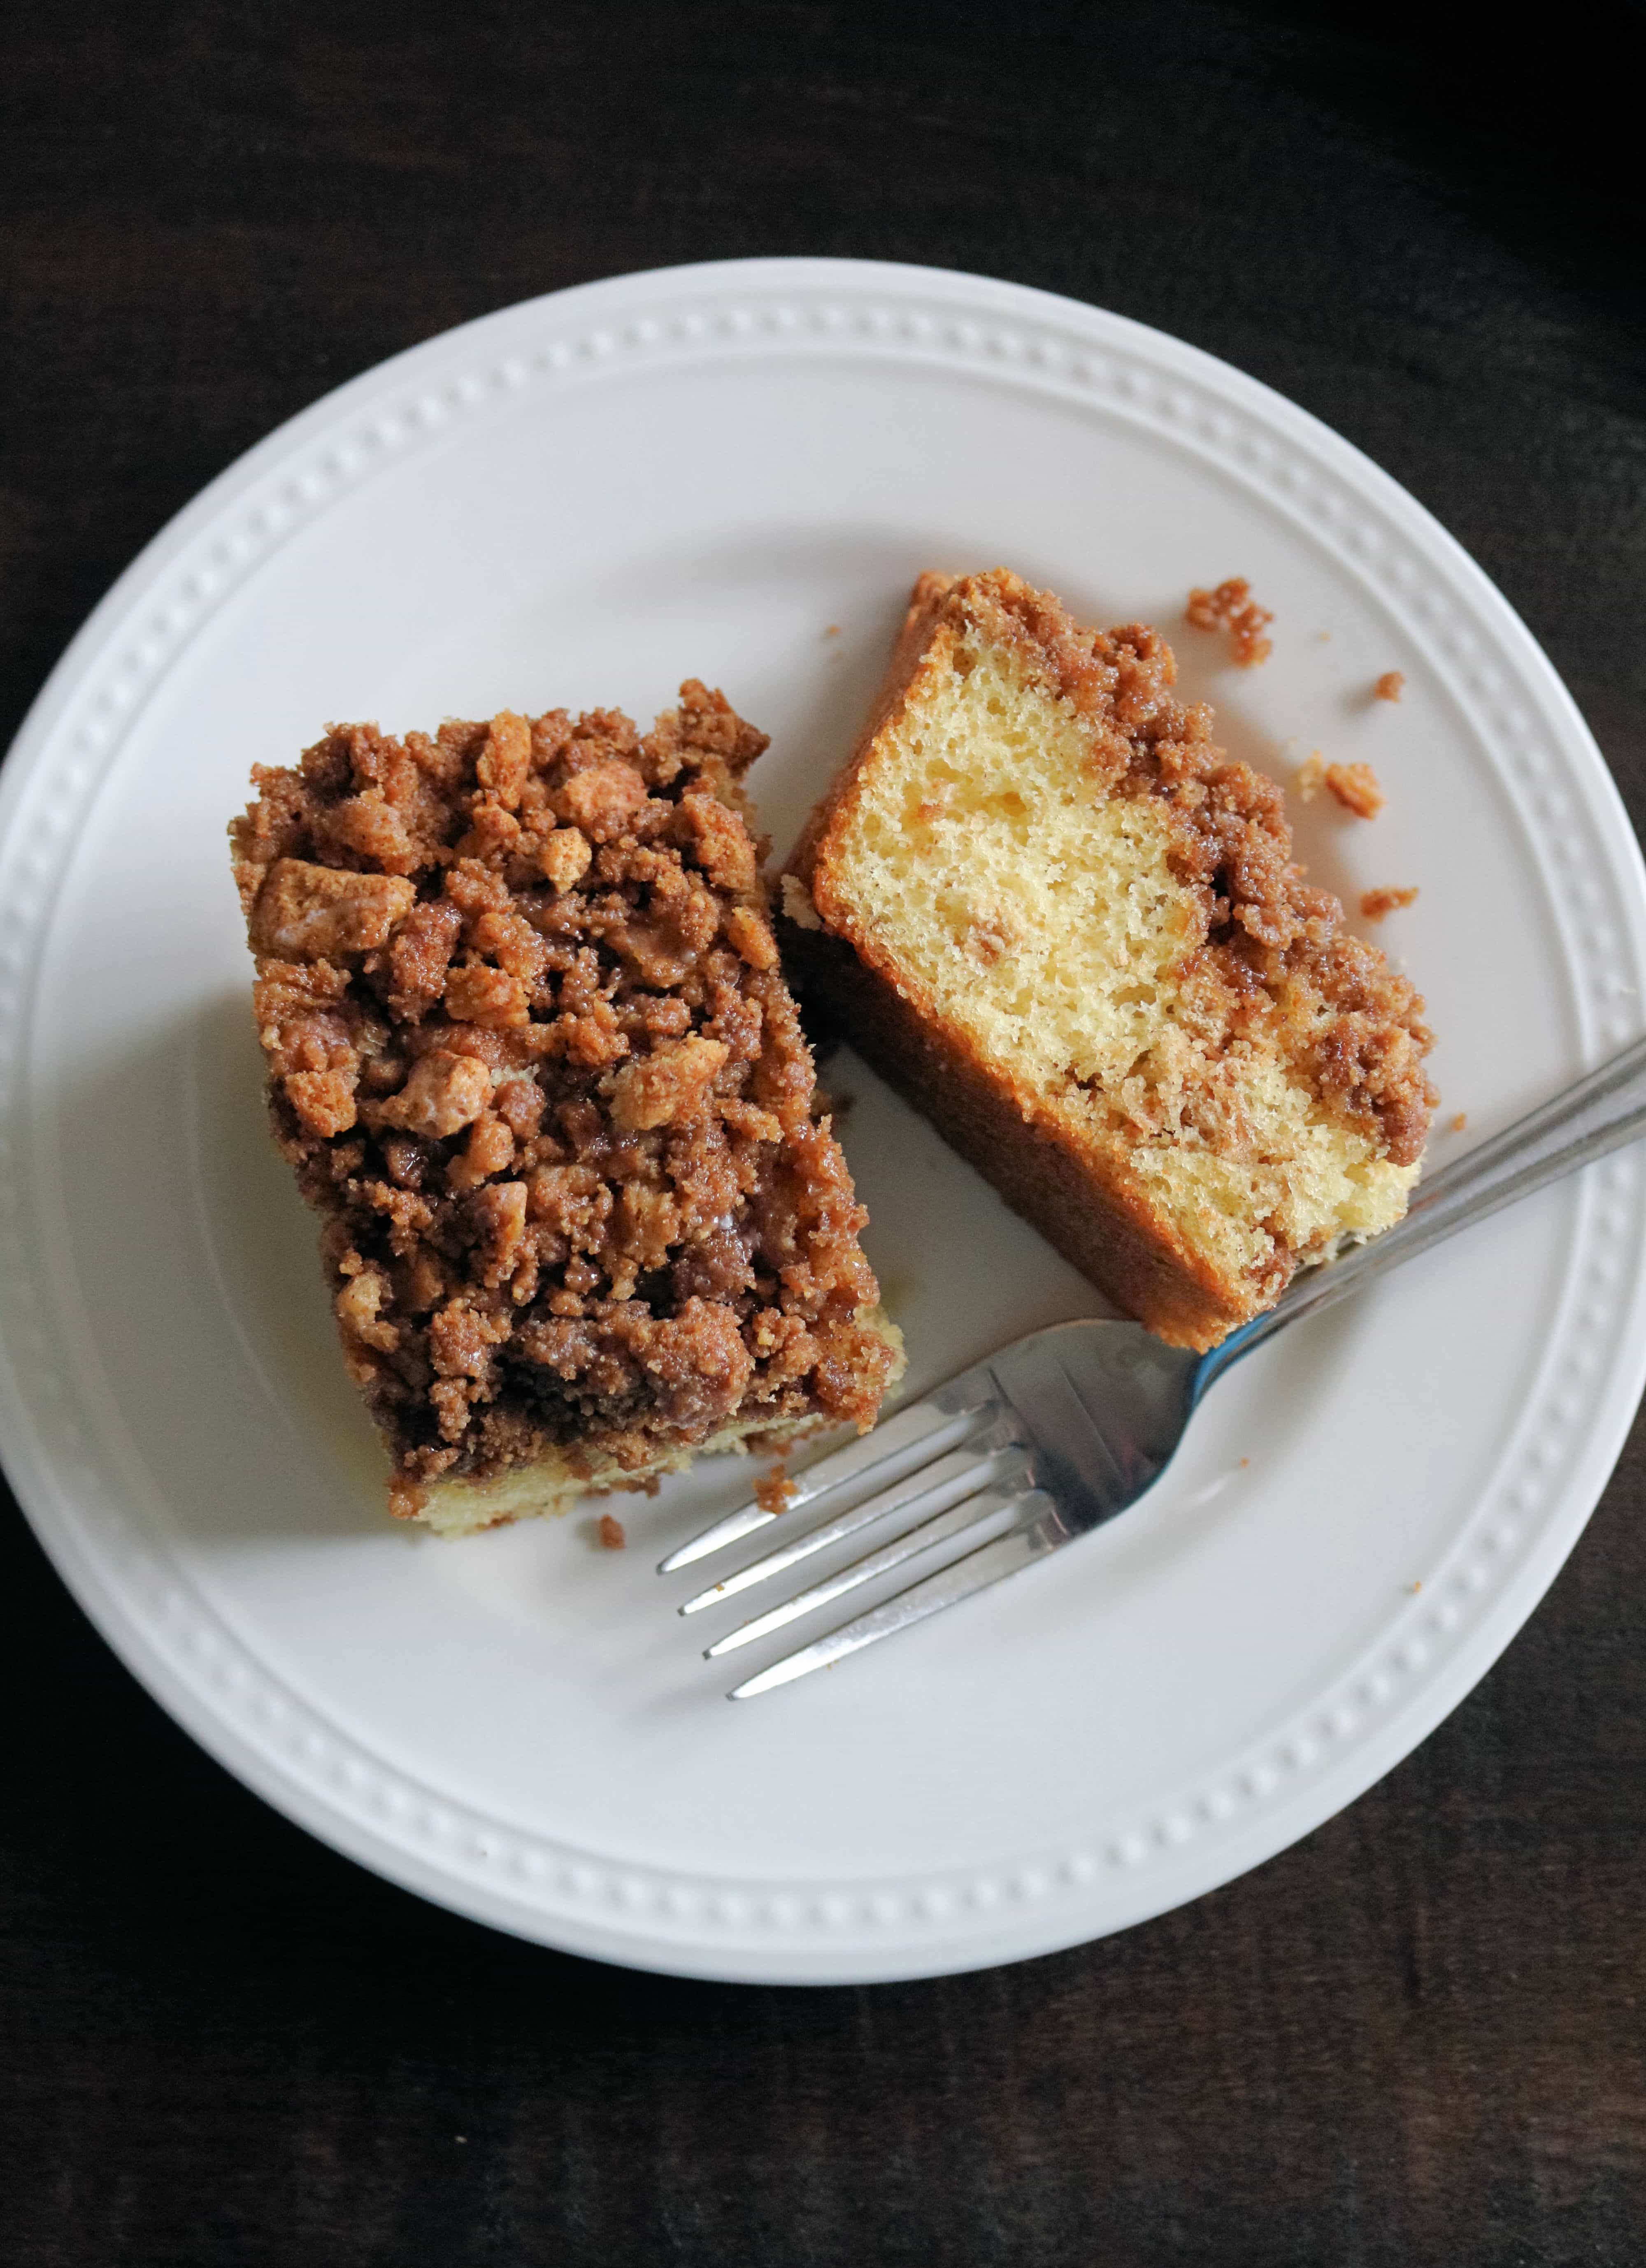 This delicious graham cracker coffee cake recipe starts with a simple yellow cake mix and features a delicious cinnamon sugar and graham cracker streusel that is layered both in the cake and on top. #coffeecake #breakfastrecipe #cakerecipe #streusel